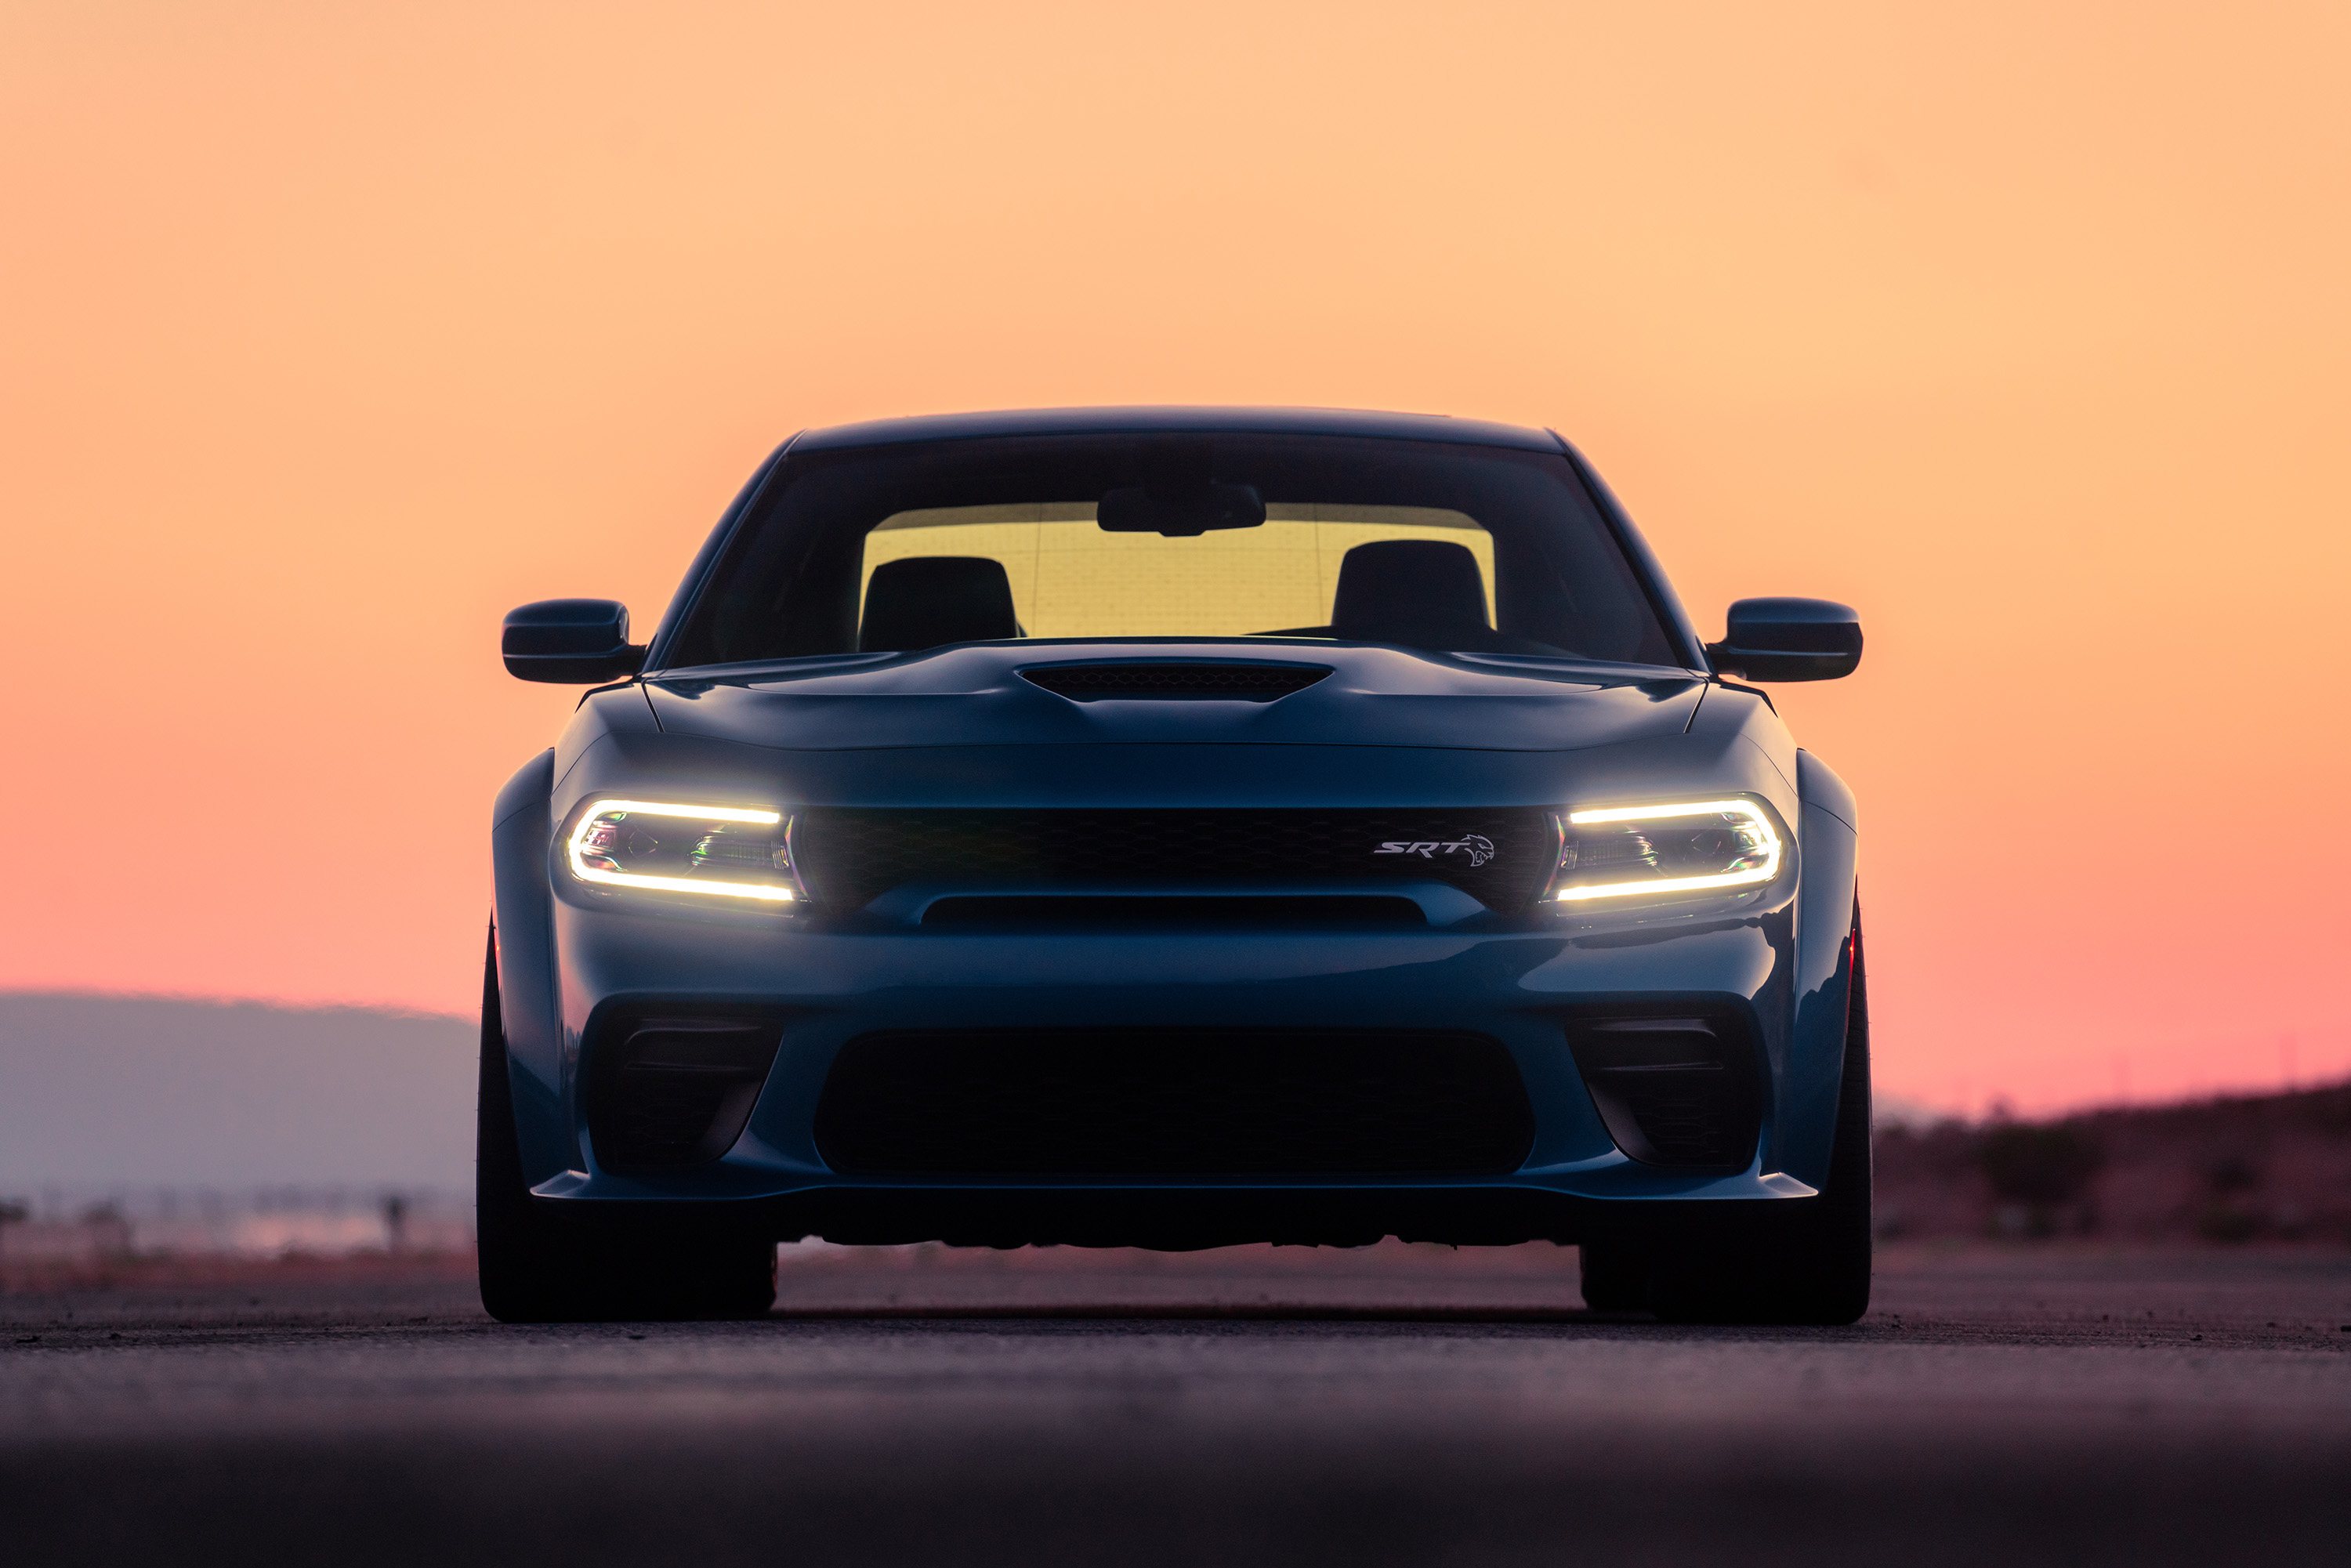 2020 Dodge Charger Srt Hellcat Widebody Hd Cars 4k